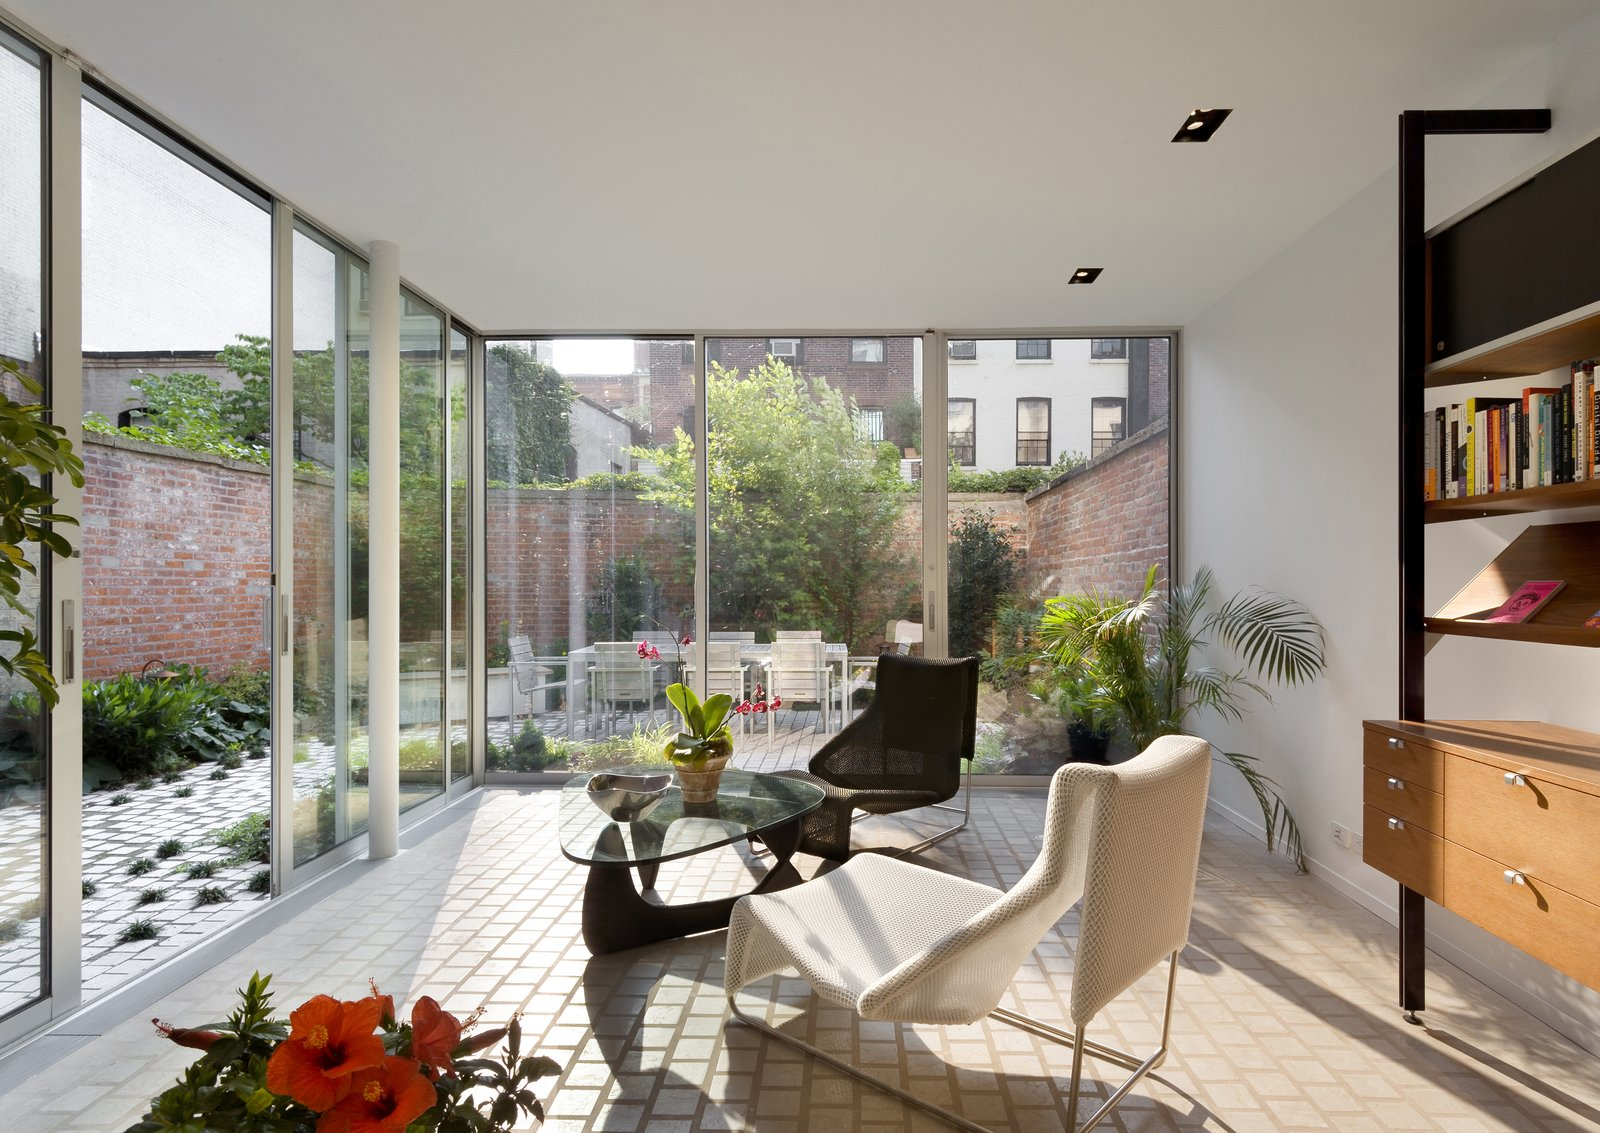 East Side Loft by 1100 Architects  Photo 3 of 7 in New York Architects on How COVID-19 Is Urging Us to Rethink Home Design